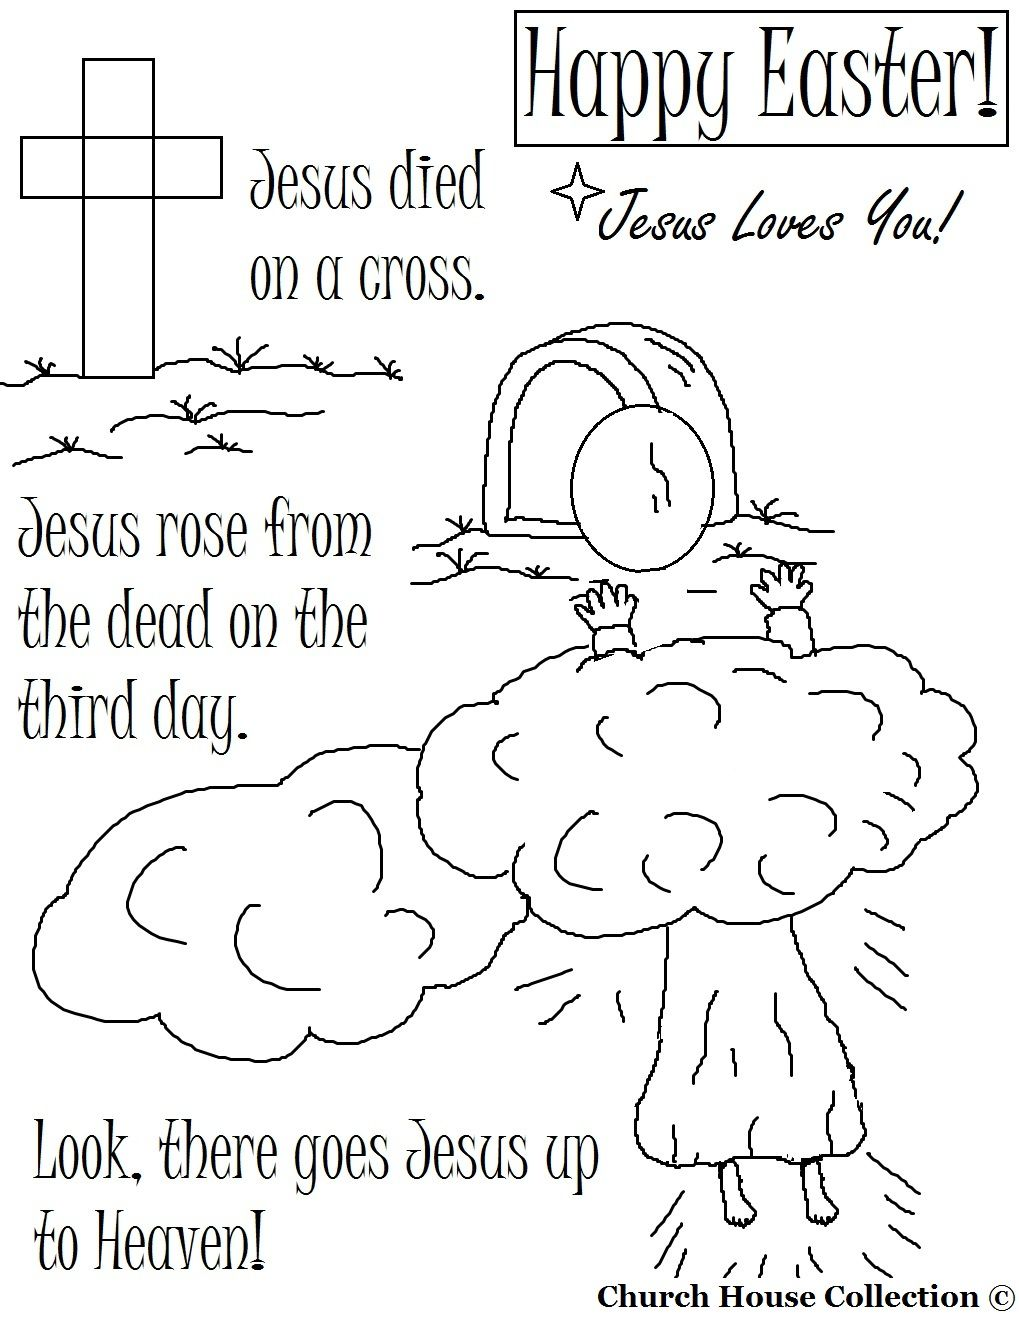 Jesus Easter Resurrection Coloring Pages Jpg 1 019 1 319 Pixels Sunday School Coloring Pages Easter Coloring Pages Printable Easter Coloring Pages